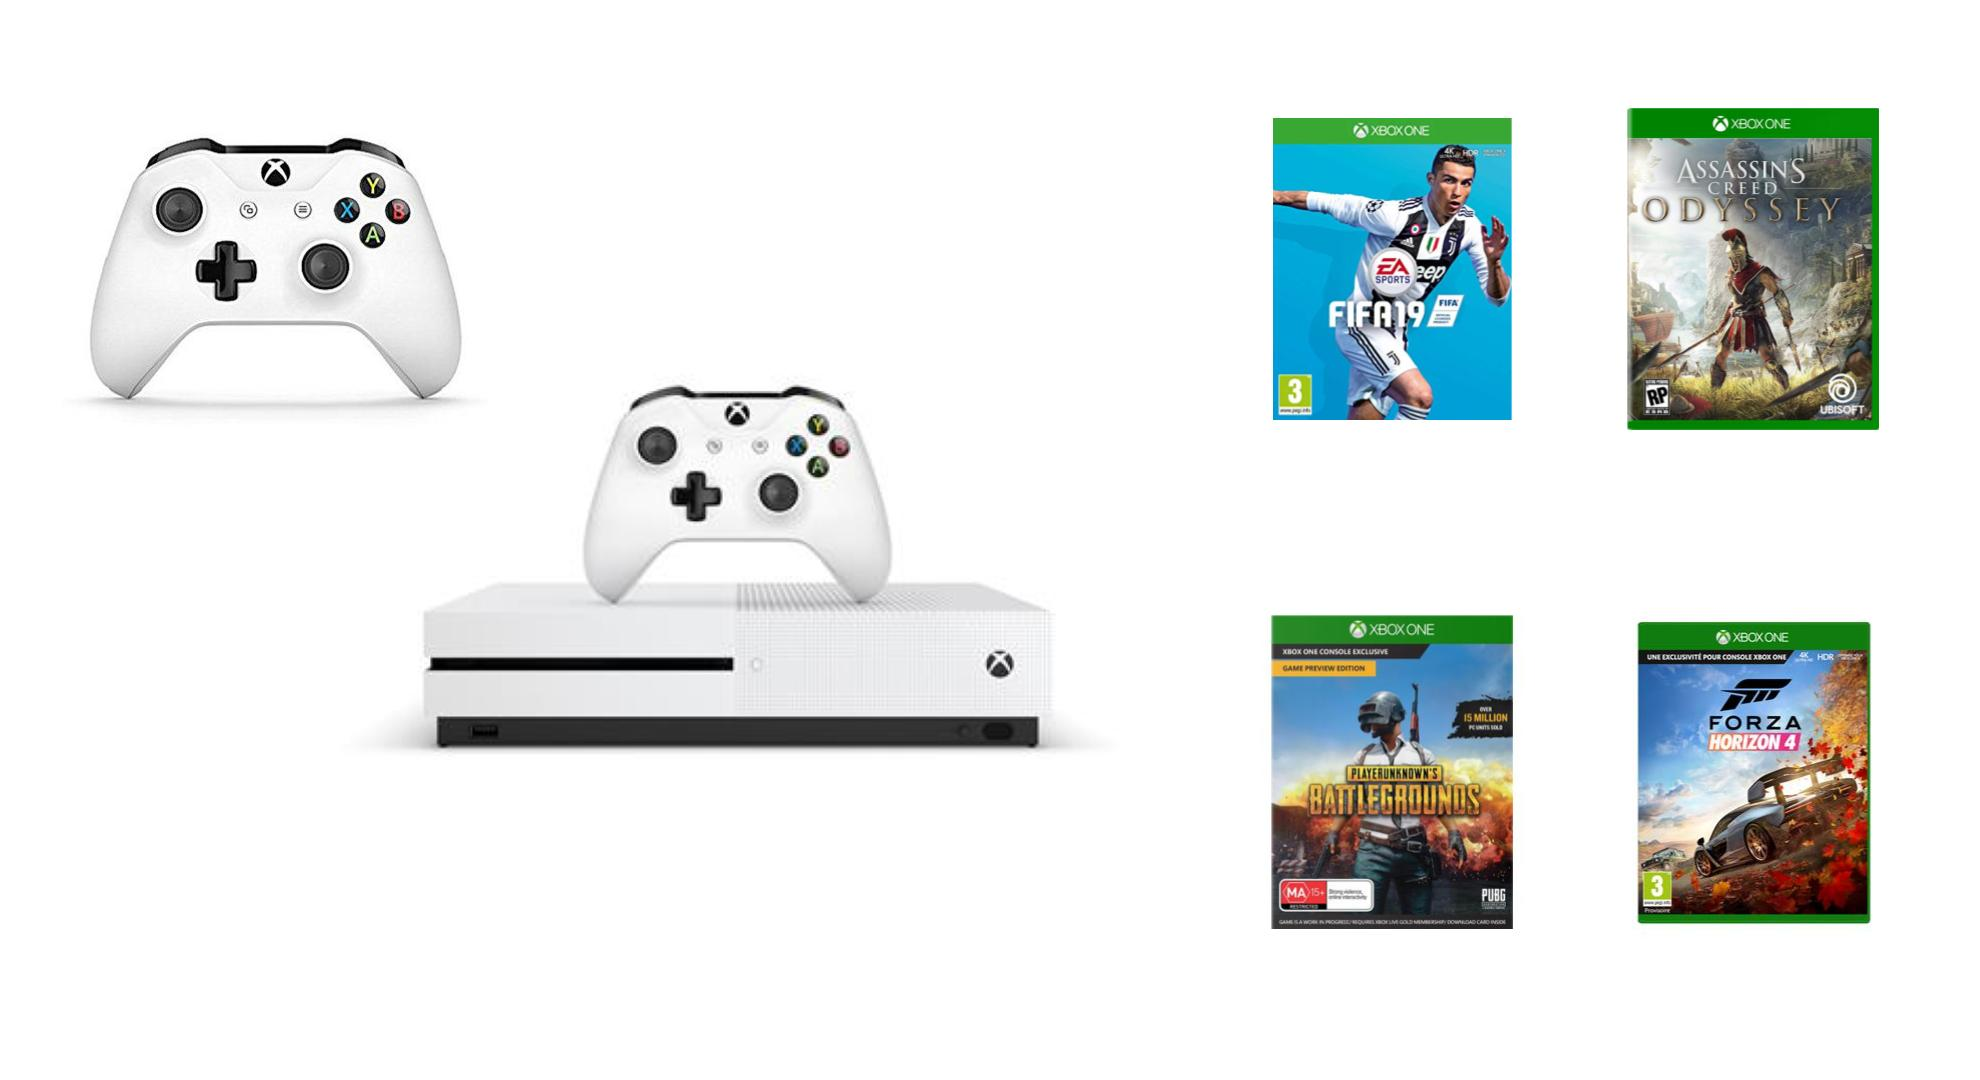 bon plan pack xbox one s avec 4 jeux dont assassin 39 s creed odyssey 2 manettes 299 euros. Black Bedroom Furniture Sets. Home Design Ideas